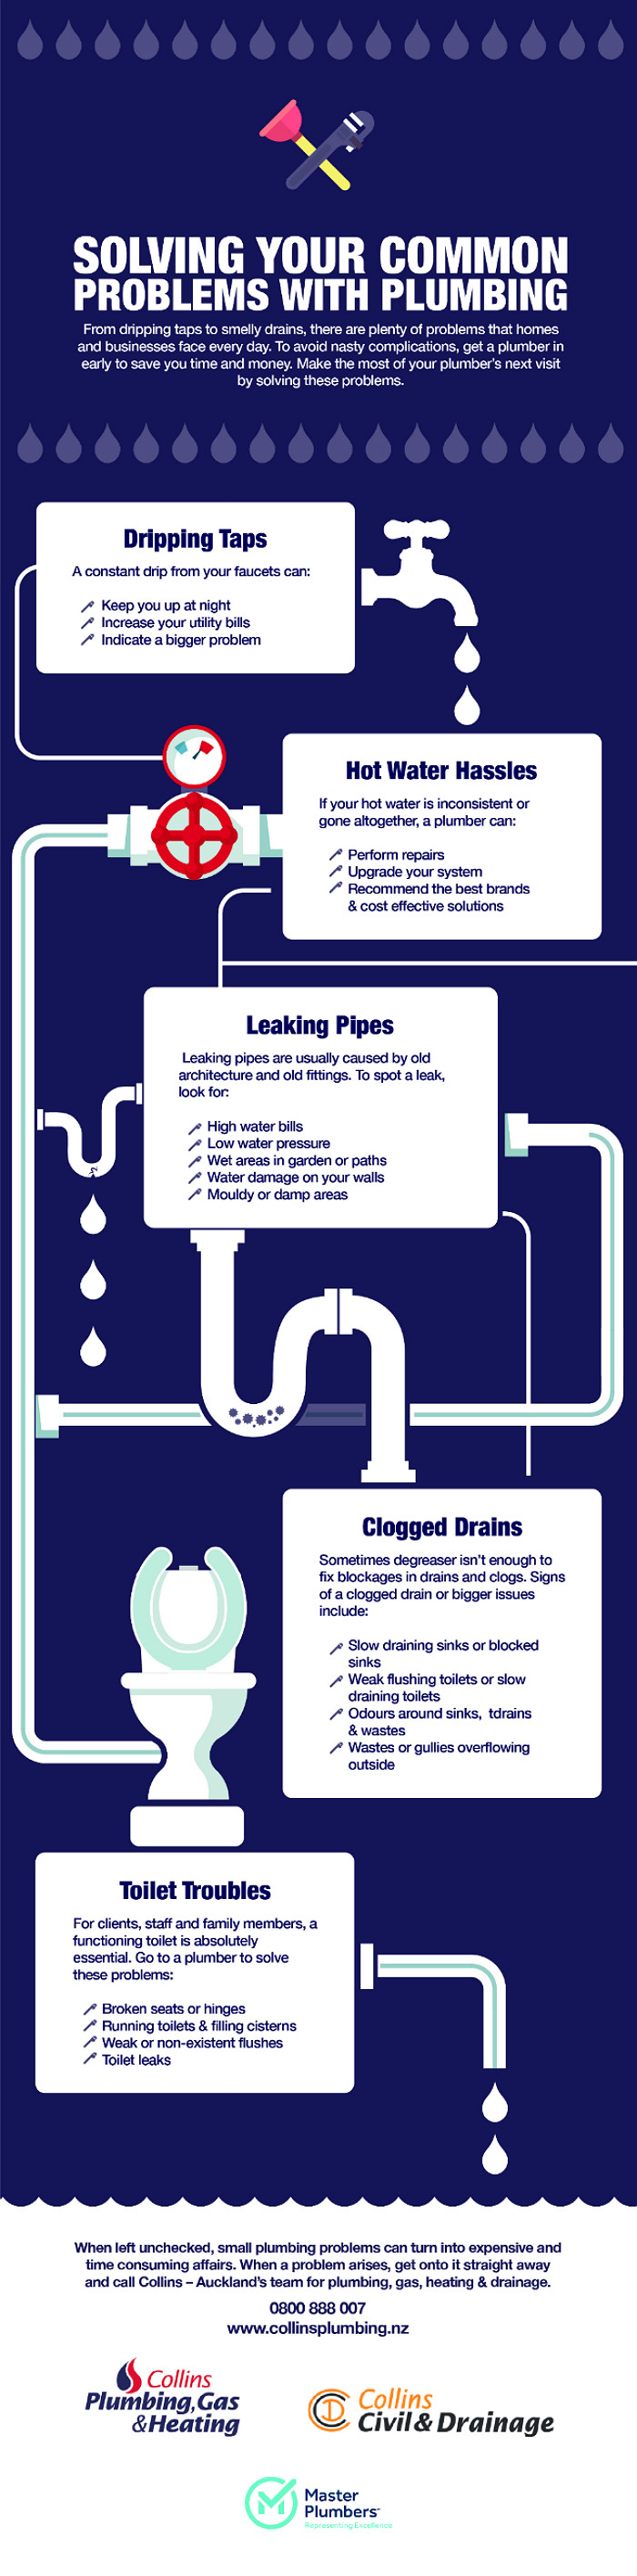 Solving your common plumbing problems